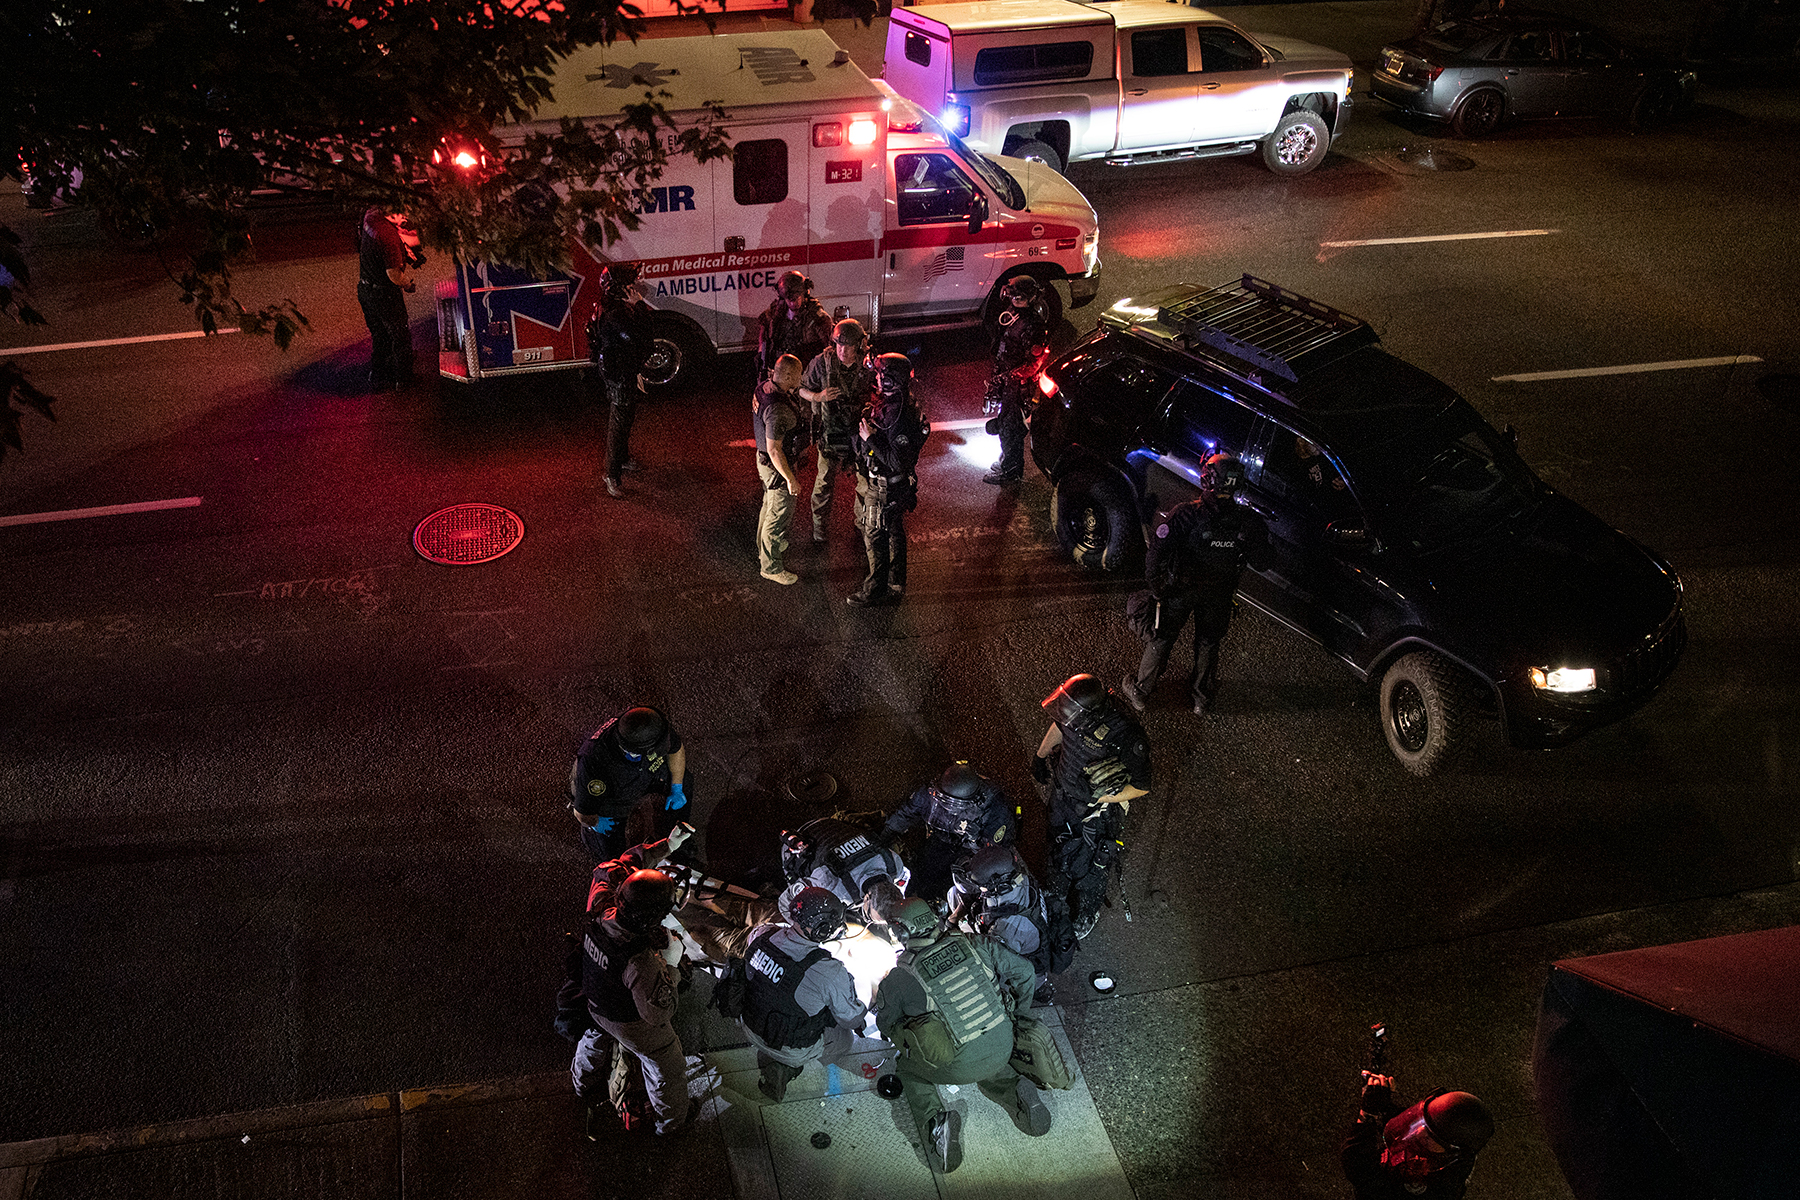 First responders treat a man who was fatally shot on Saturday, Aug. 29, 2020, in Portland, Ore